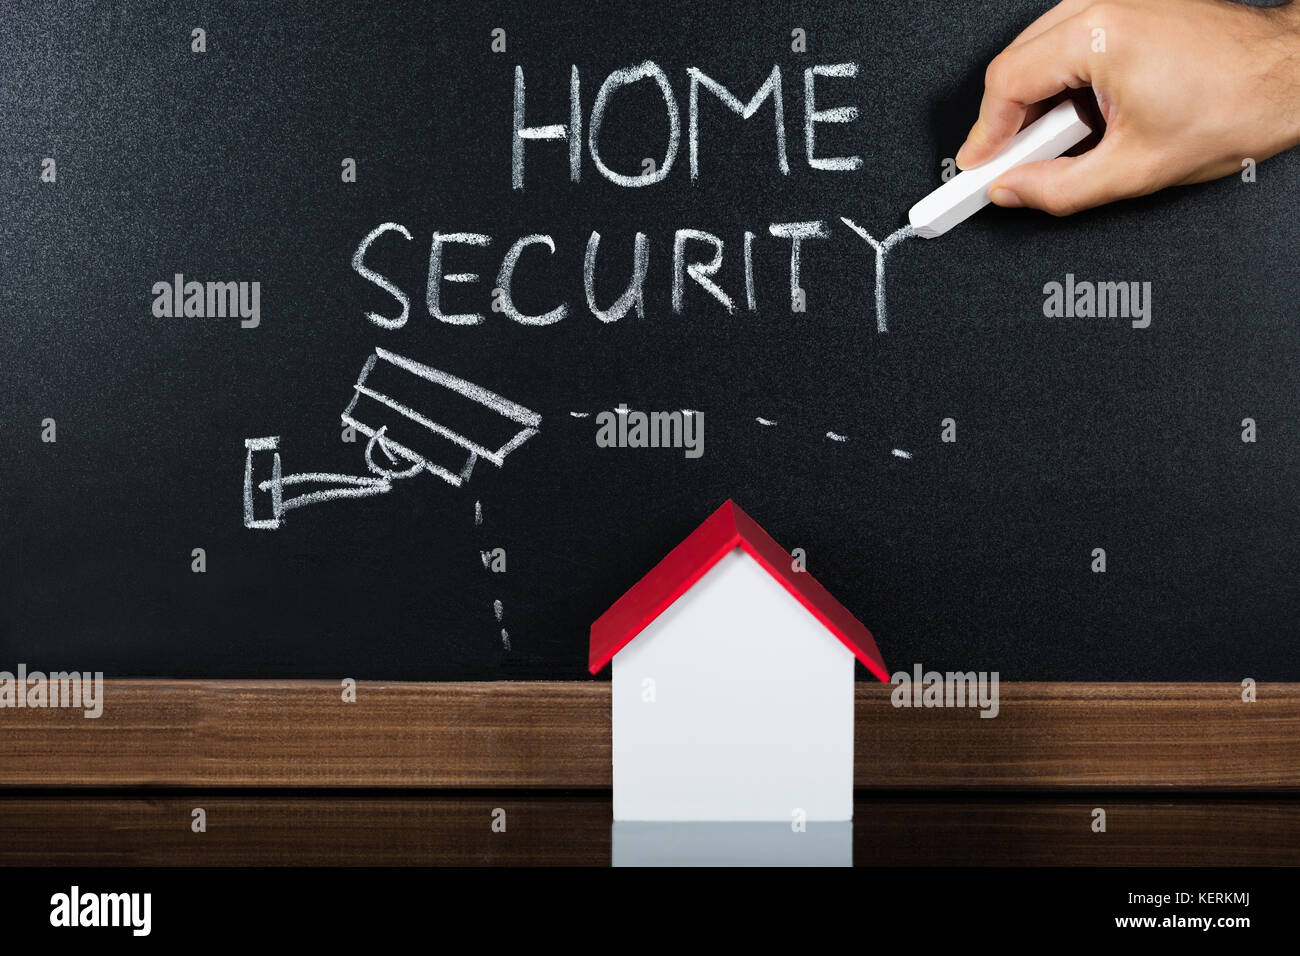 Person Hand Showing Home Security Concept On Blackboard In Front Of House Model - Stock Image